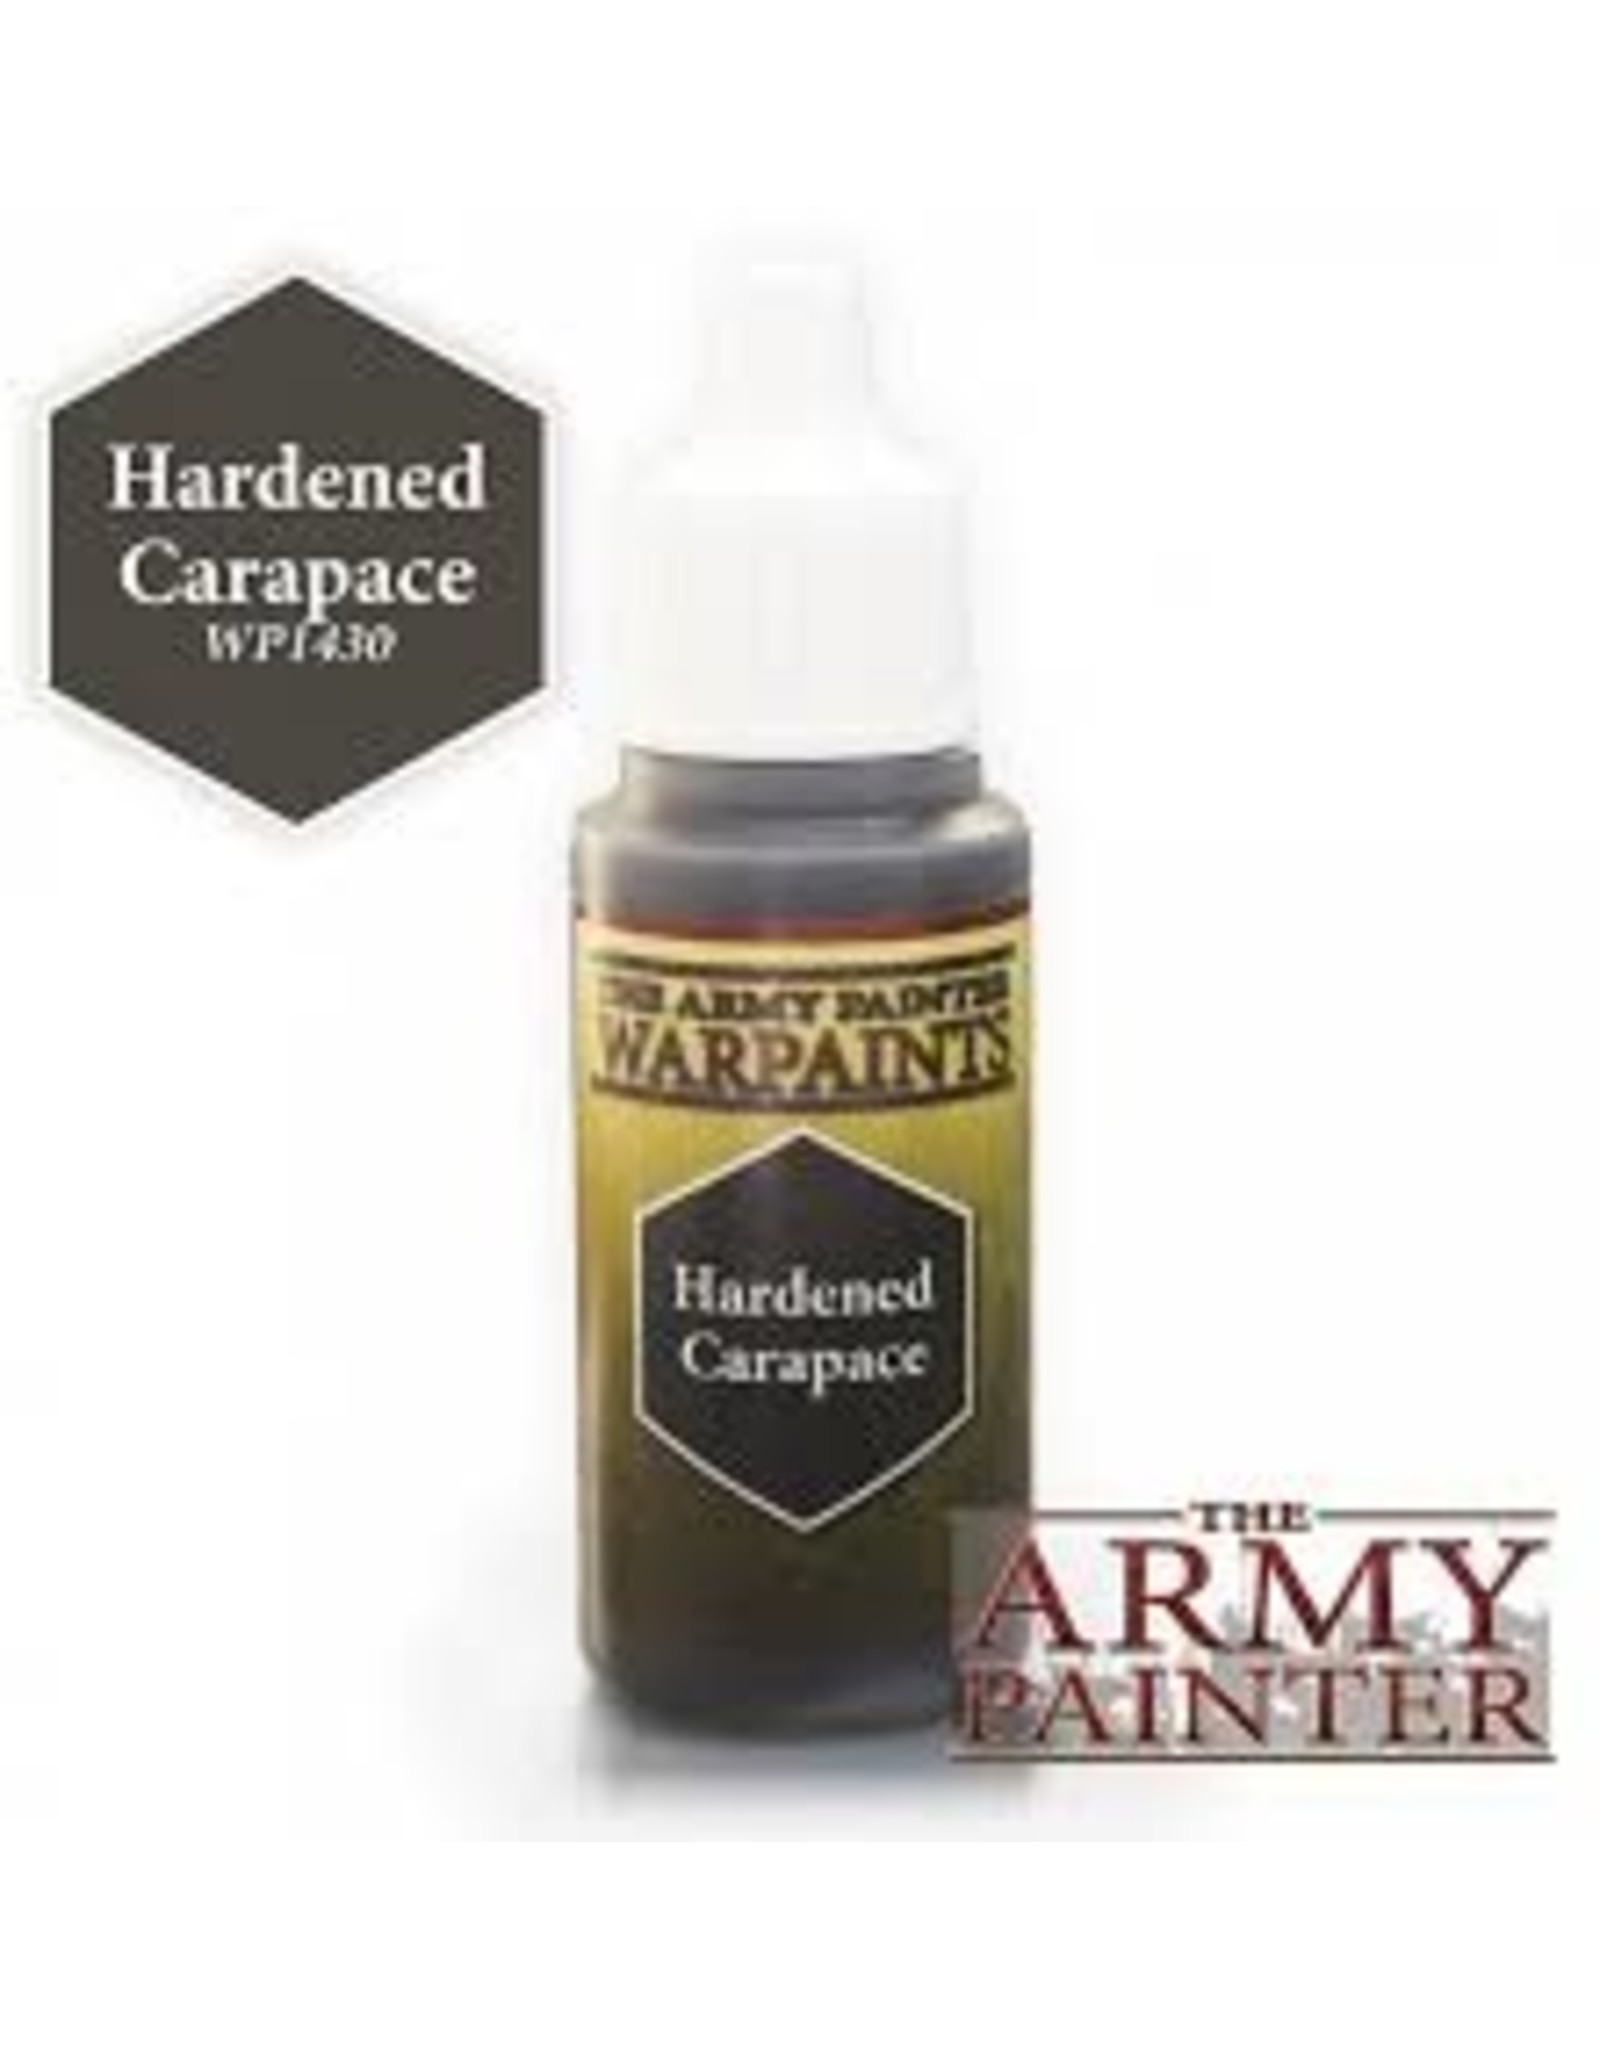 Army Painter Army Painter: Hardened Carapace